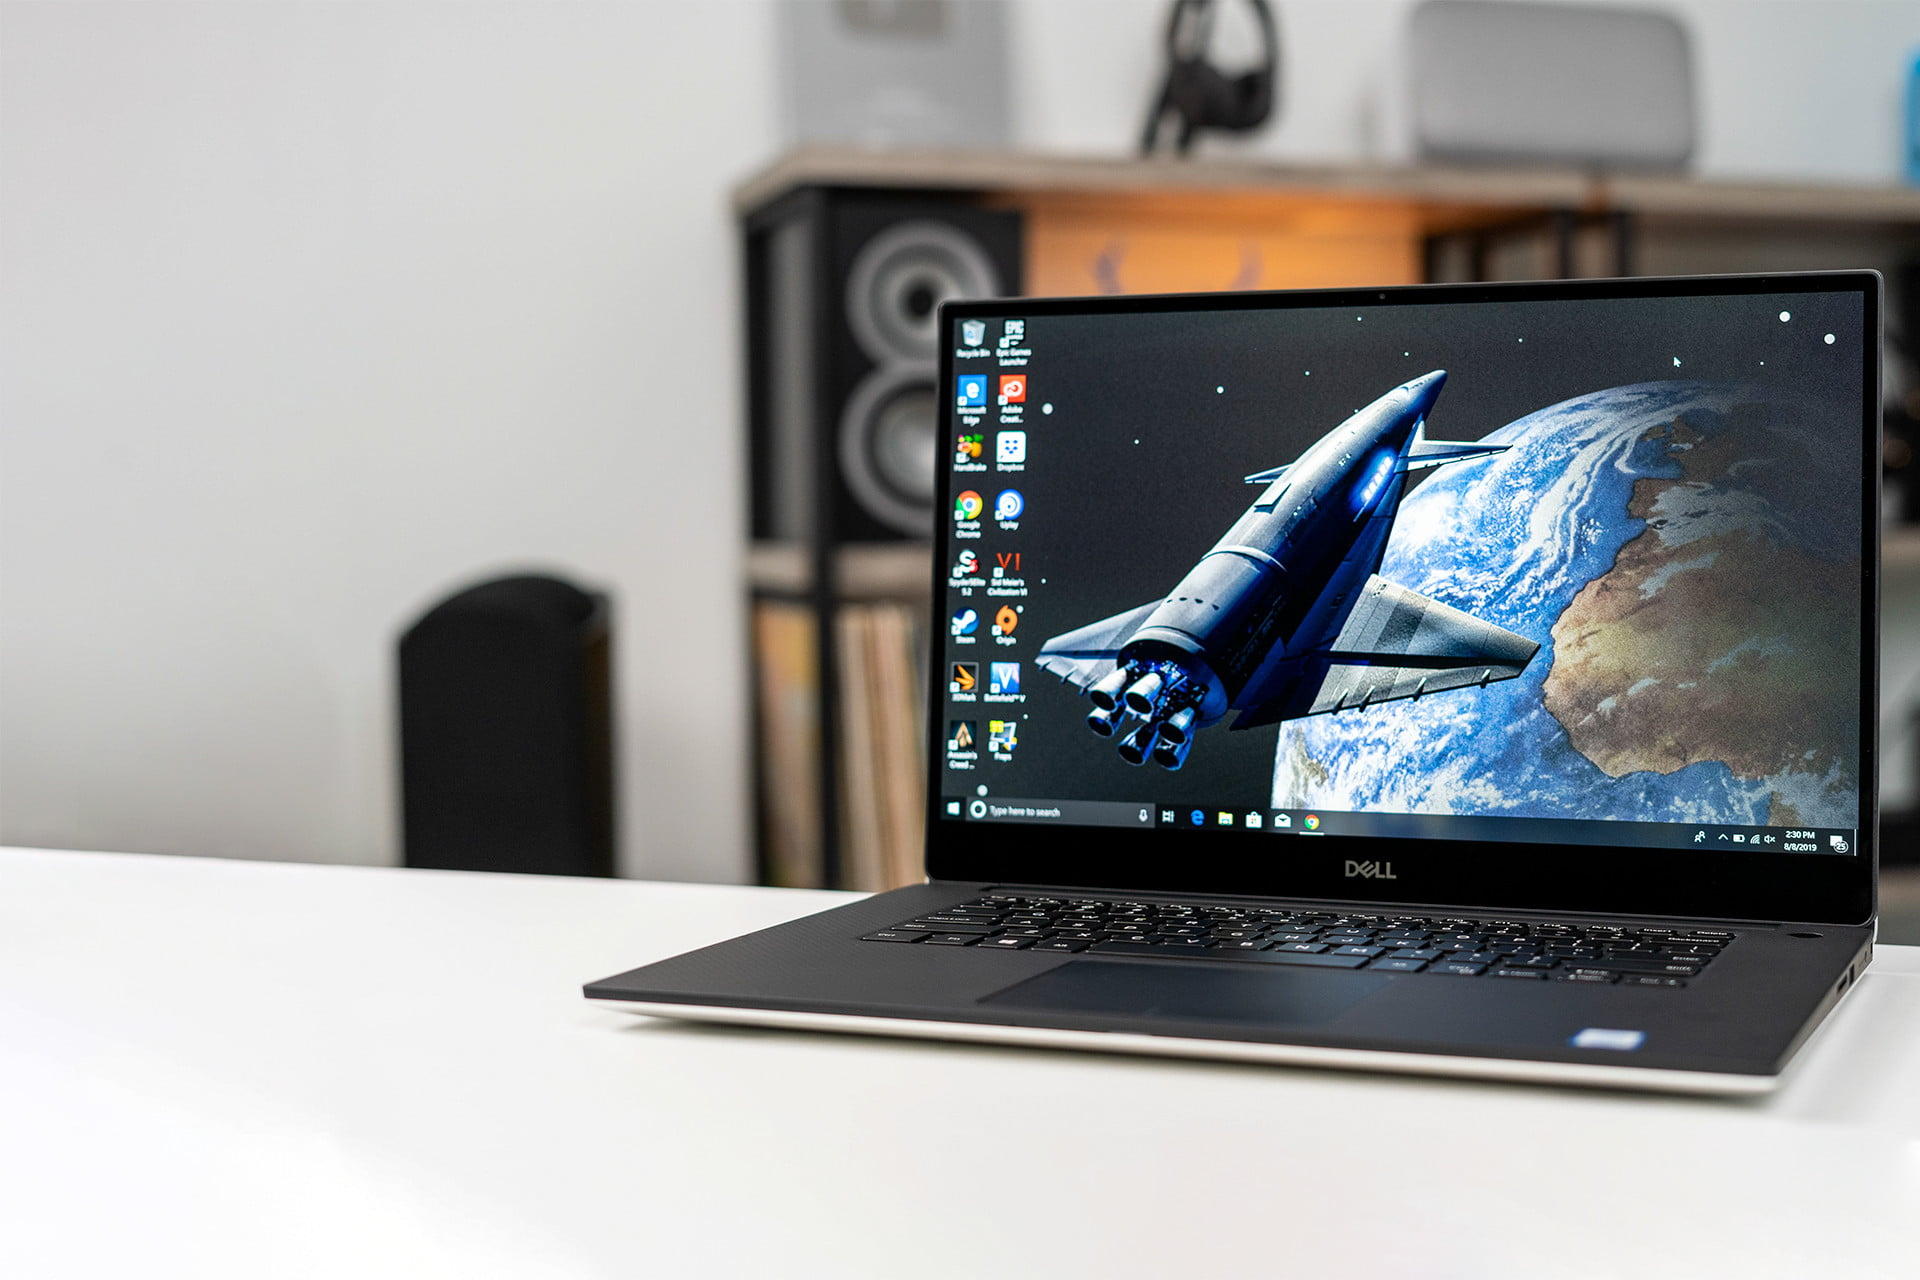 Dell sale slashes up to $250 off new XPS 15 laptop deals